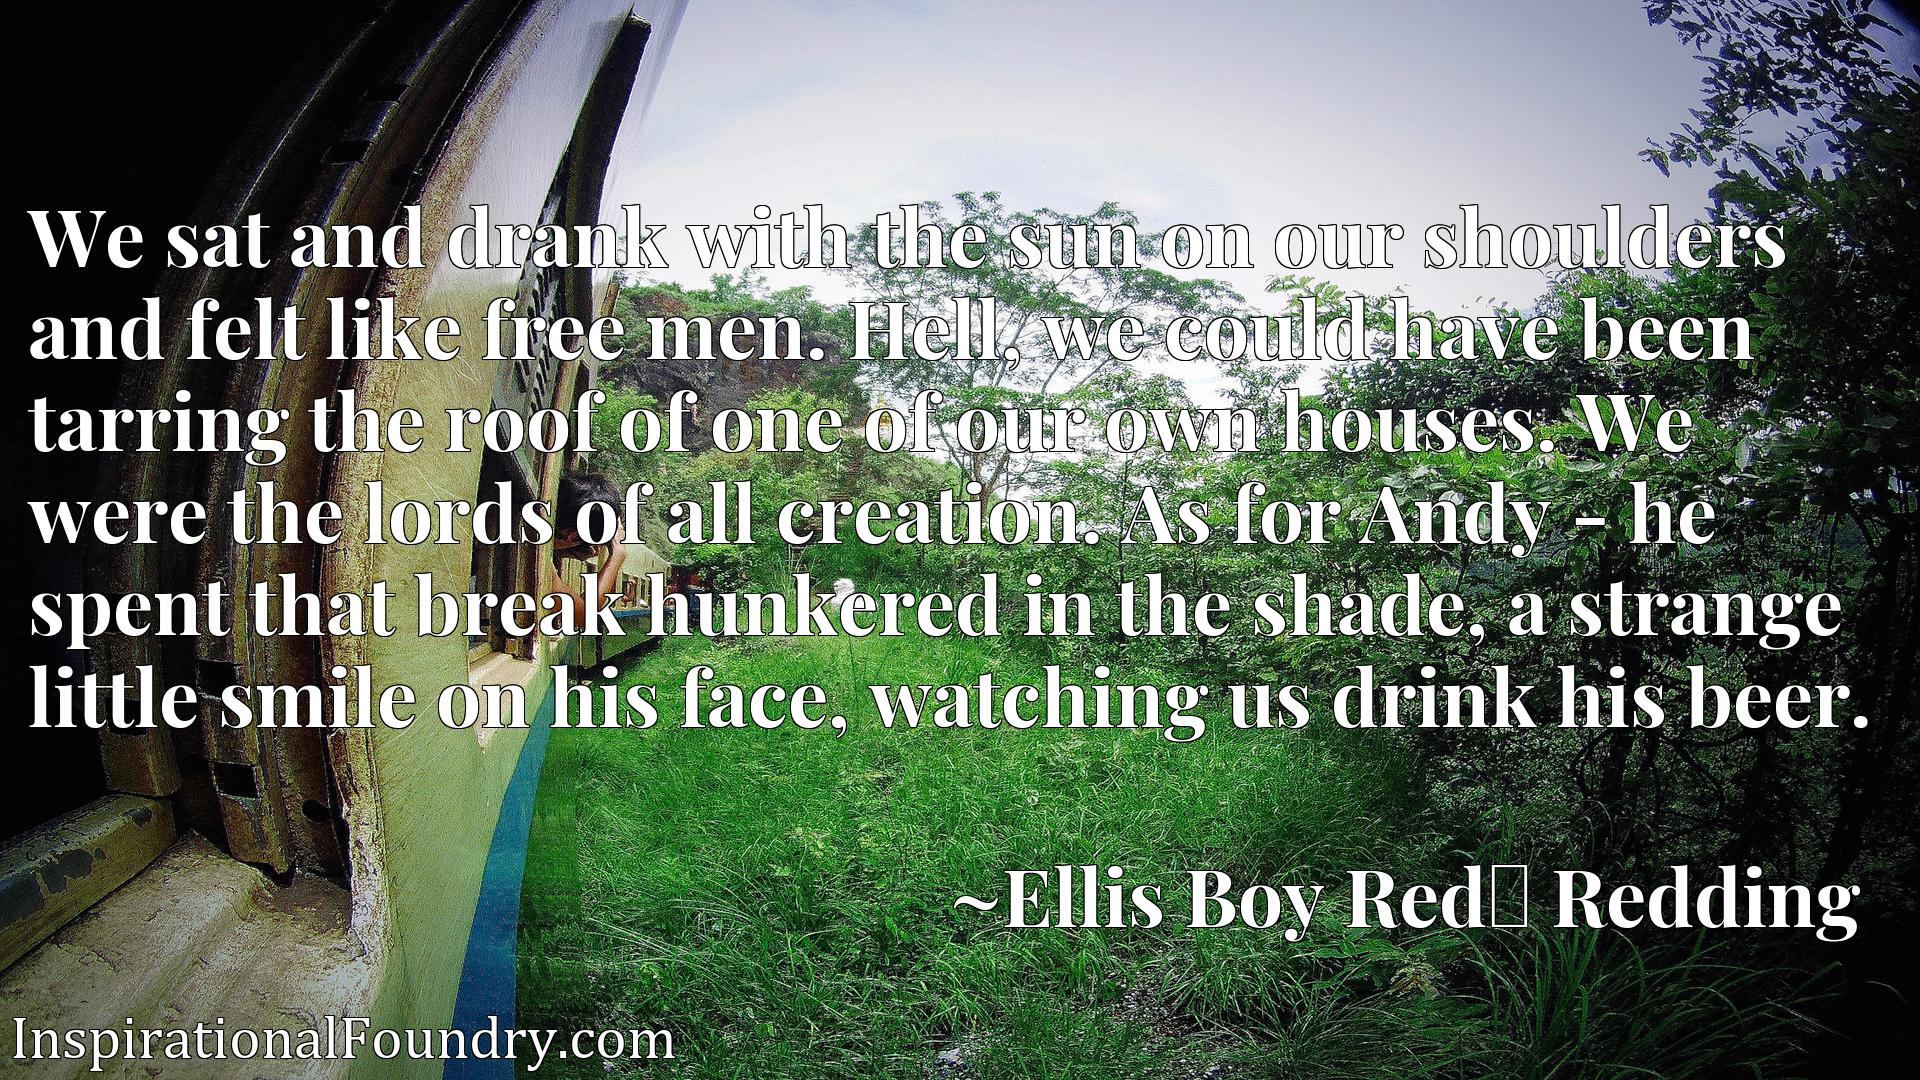 Quote Picture :We sat and drank with the sun on our shoulders and felt like free men. Hell, we could have been tarring the roof of one of our own houses. We were the lords of all creation. As for Andy - he spent that break hunkered in the shade, a strange little smile on his face, watching us drink his beer.